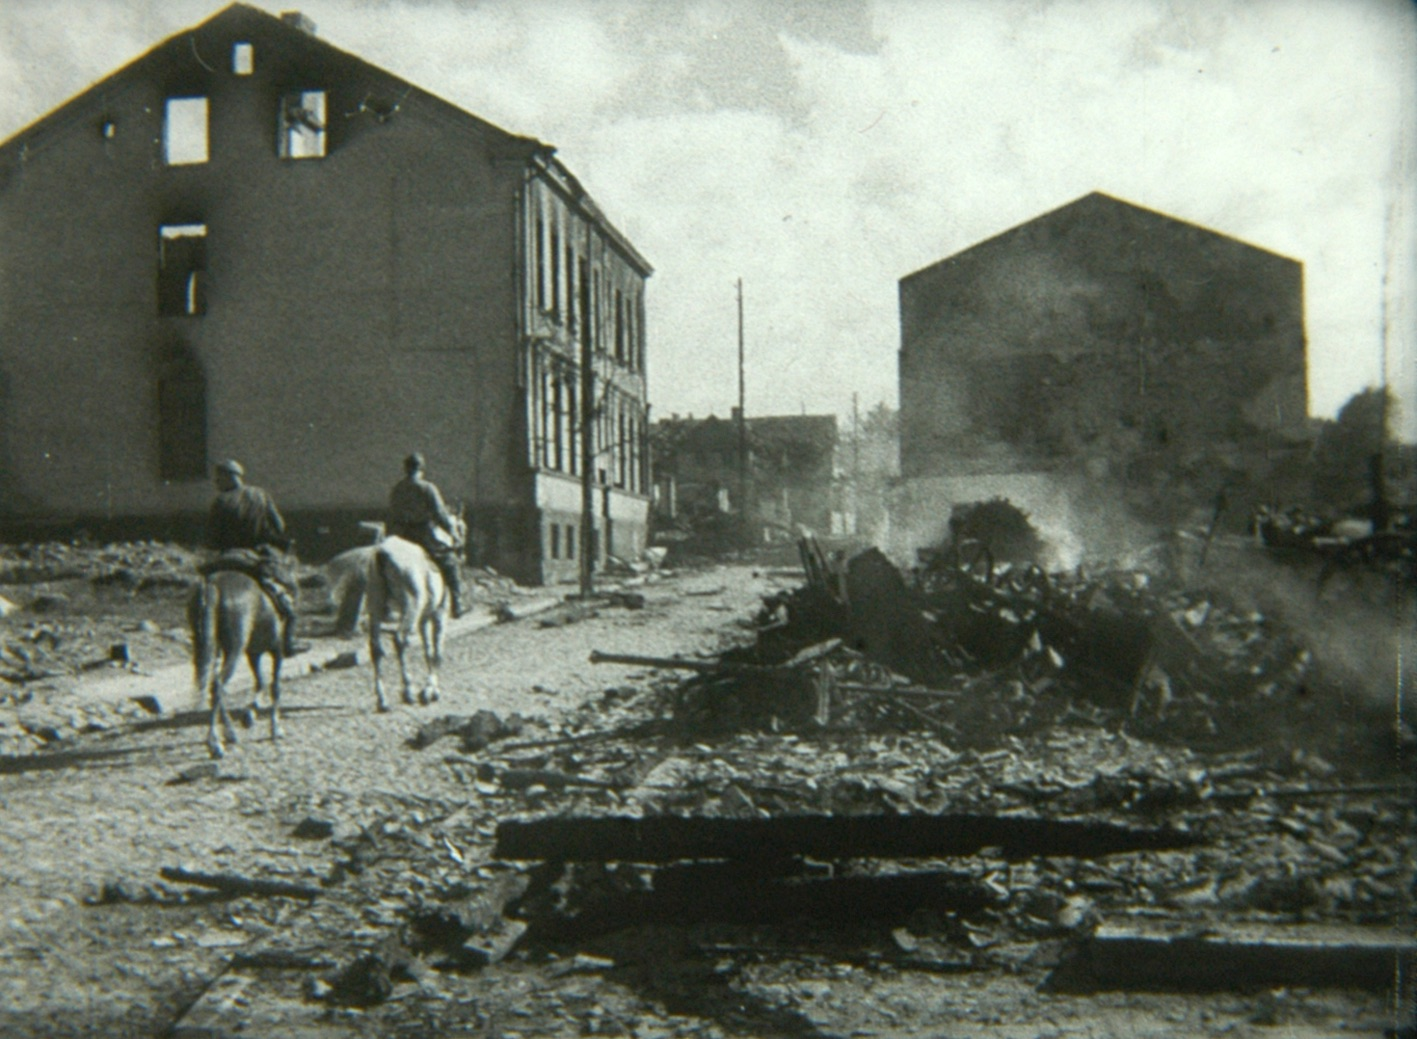 This event poster shows a still of two men on horseback passing by destroyed buildings in the city of Bialystok.